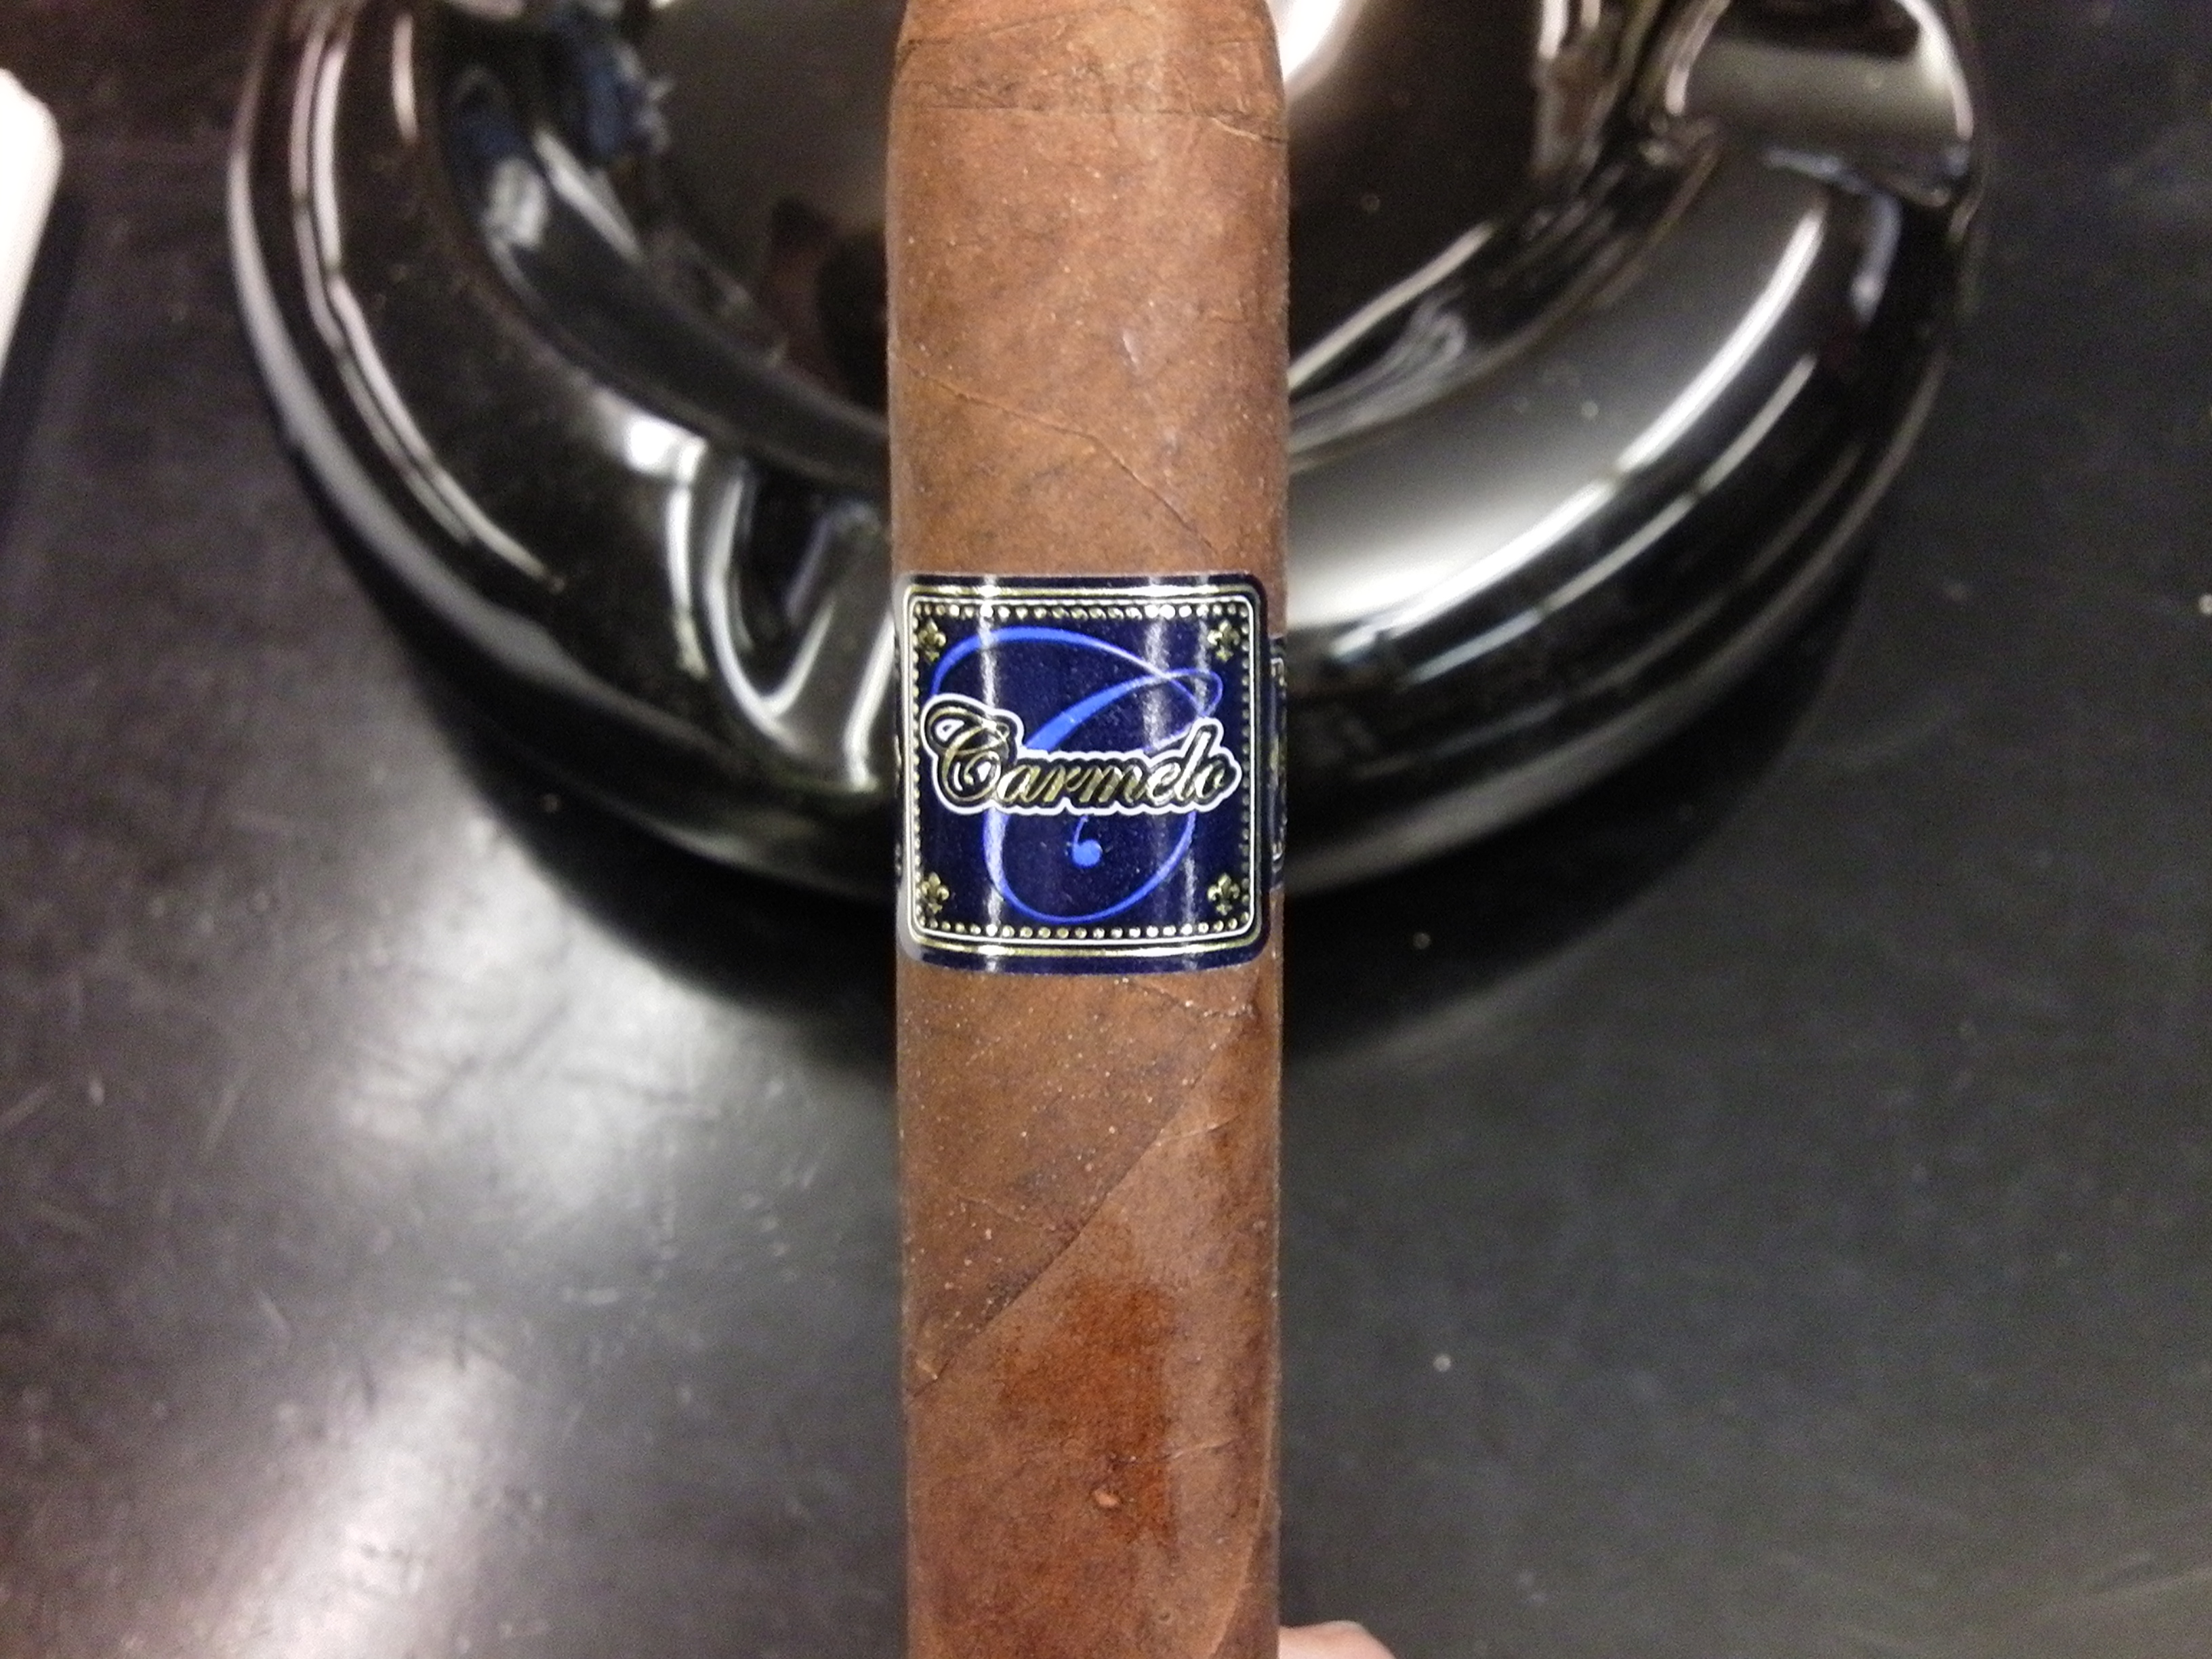 Carmelo Blue Label Maduro – Cigar Review